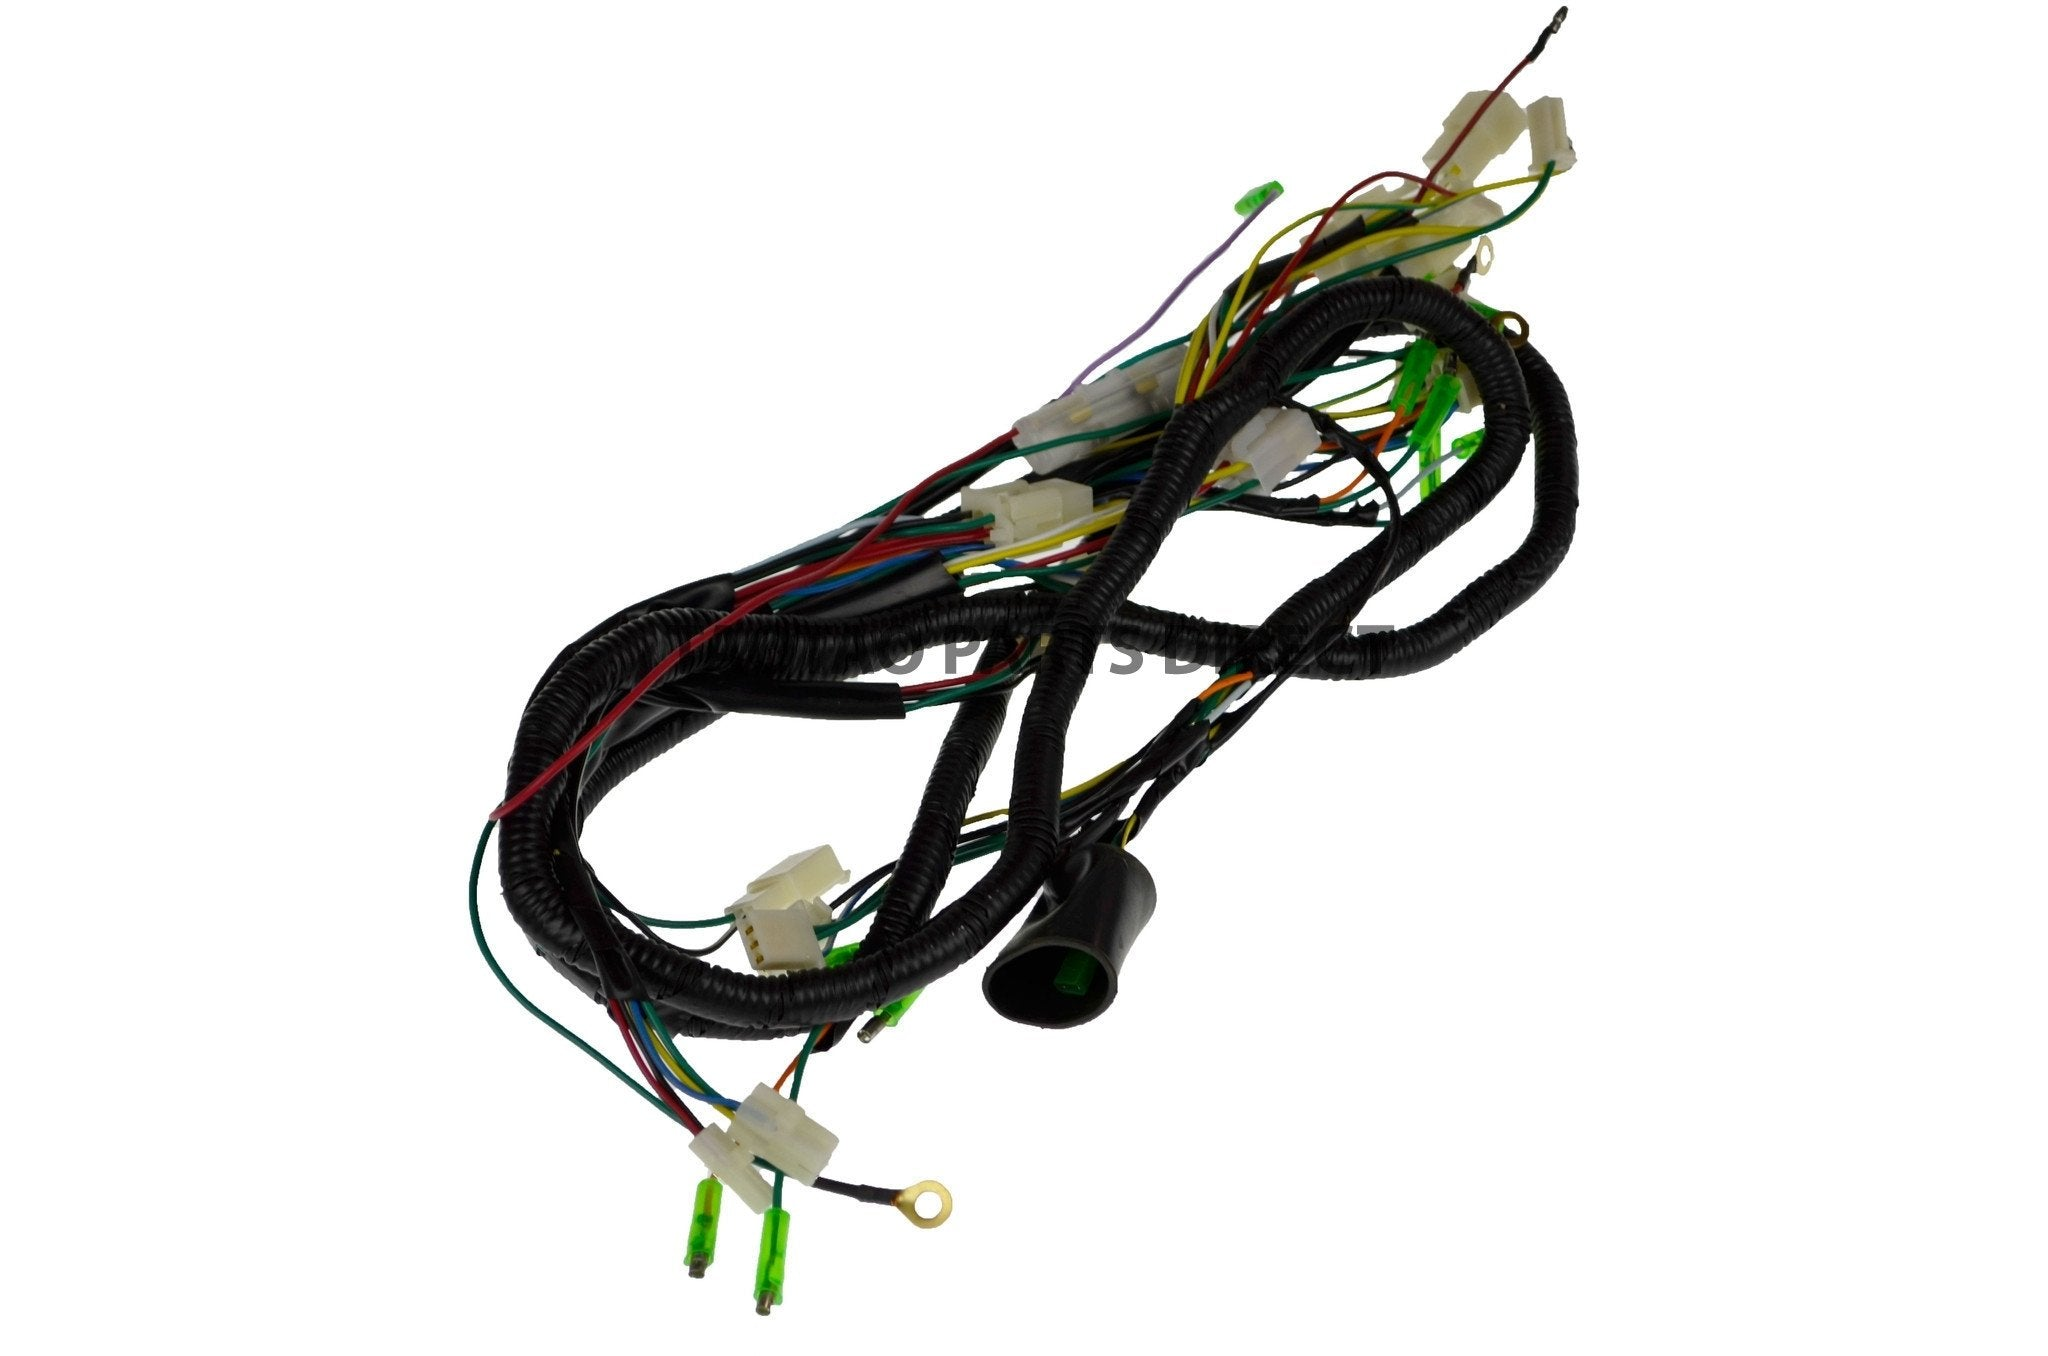 Scooter Parts - CY50A Wire Harness